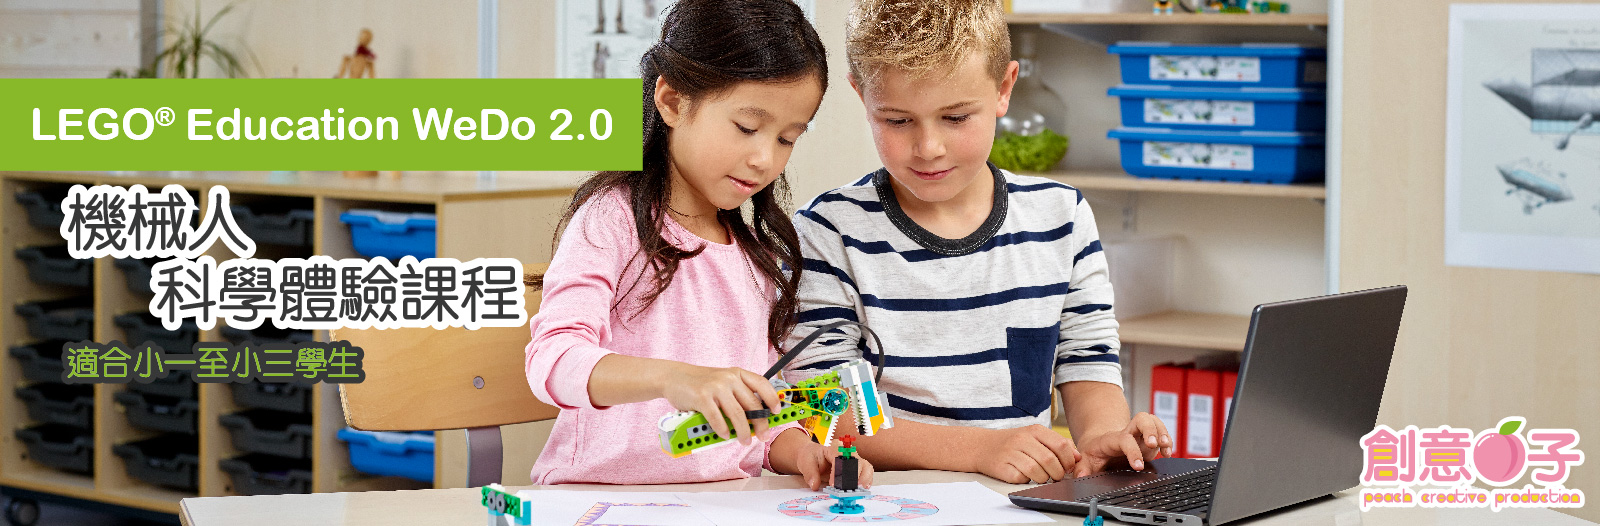 lego_Course_banner_wedo_L